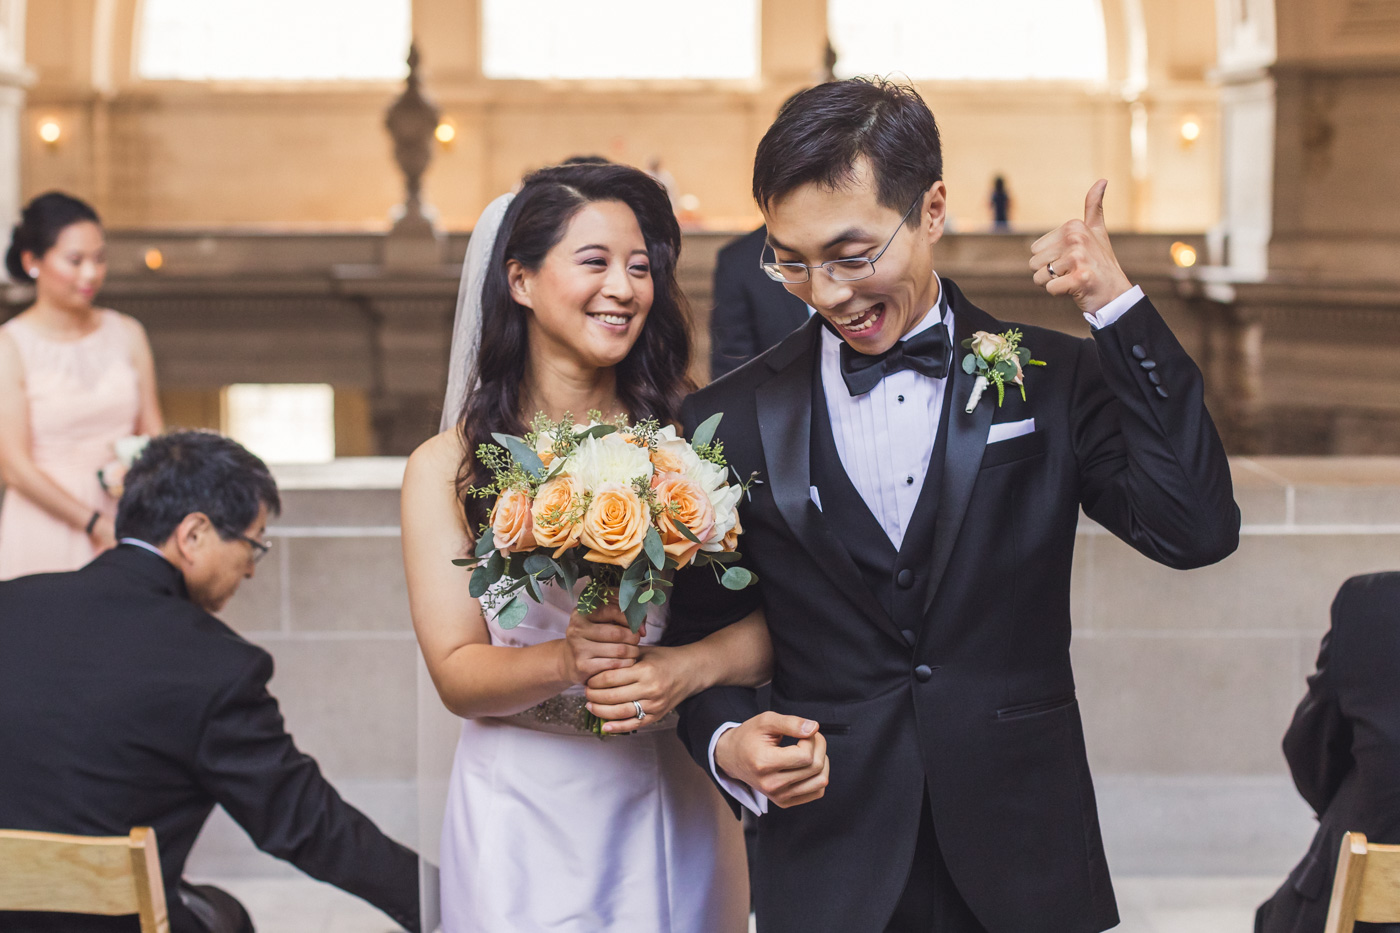 groom-giving-thumbs-up